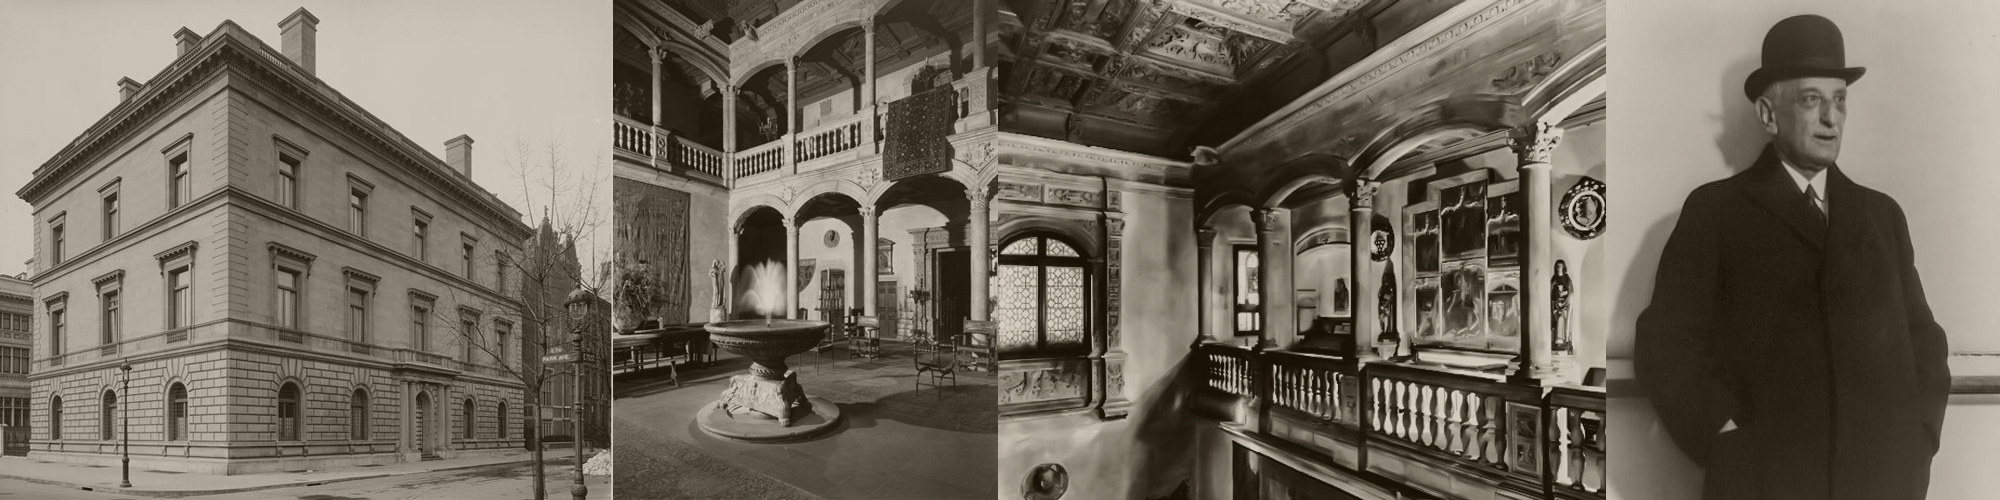 The Blumenthal residence in New York 1930's. You can see the Patio de Honor from the castle of Vélez Blanco built into the interior of the building.